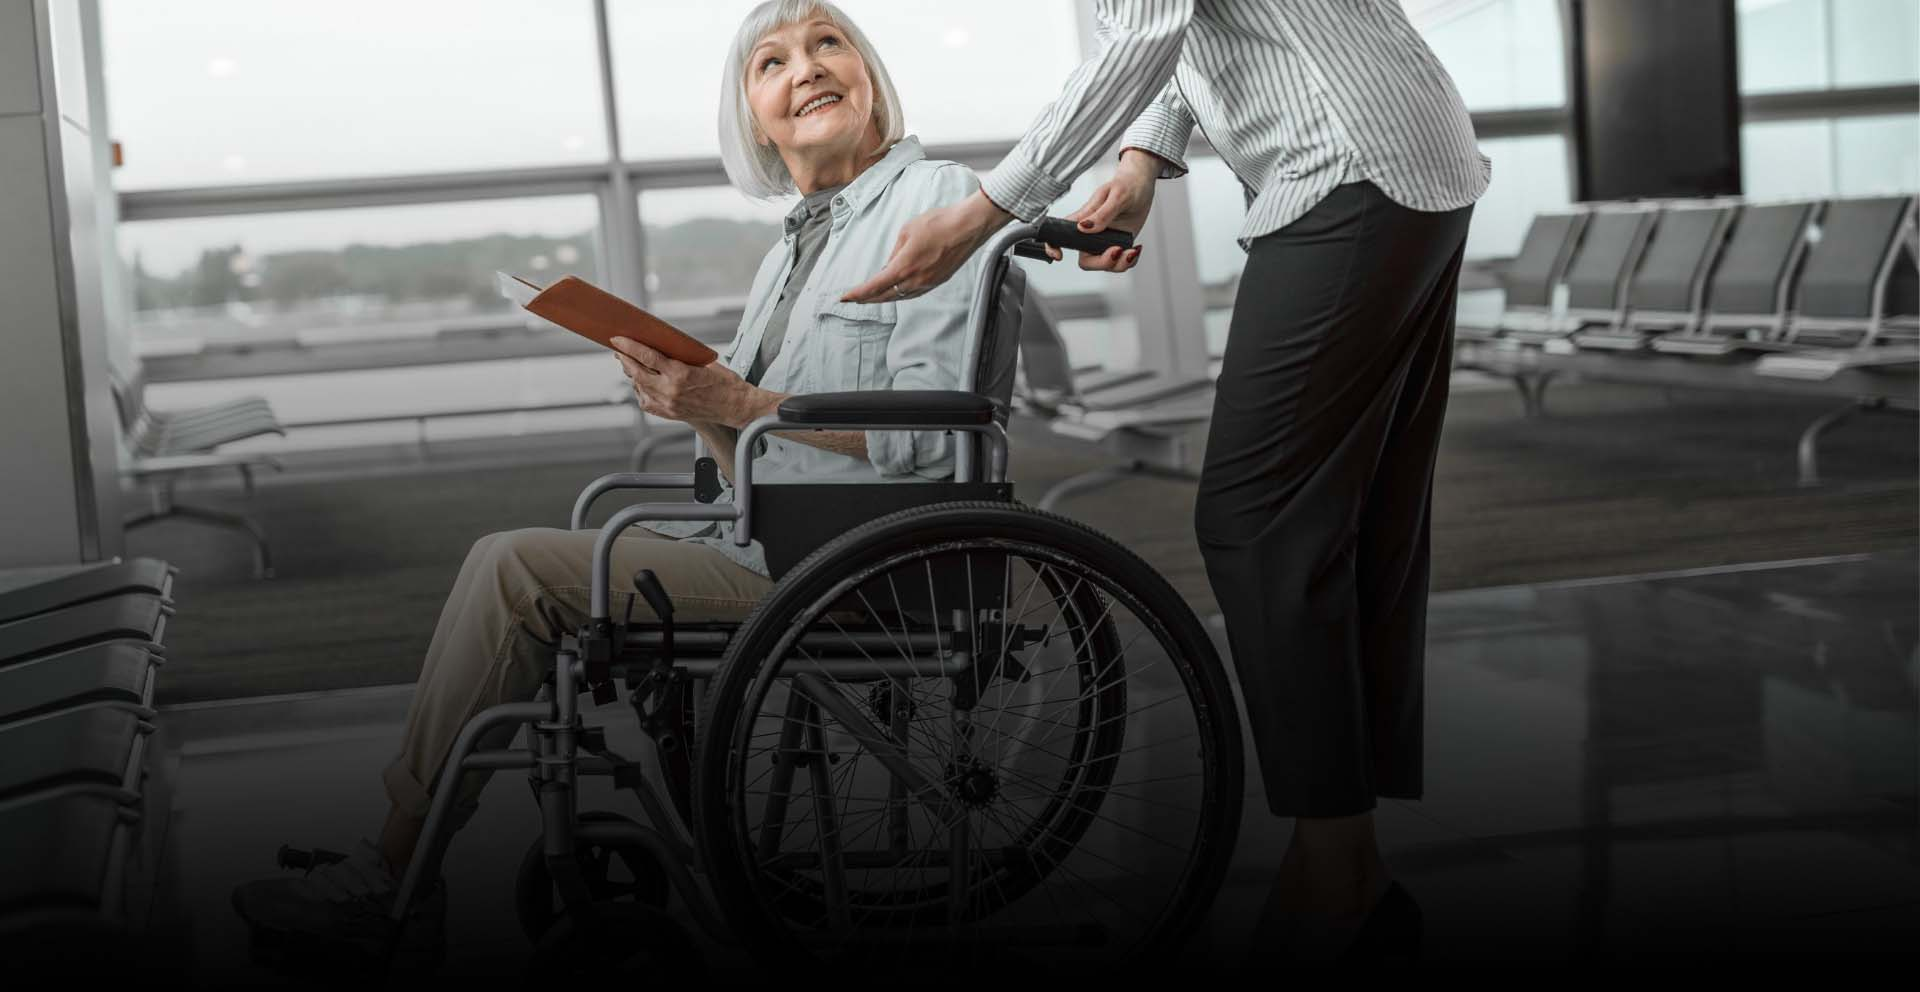 How To Get Wheelchair At Airport for a Person Having Disability or Injury?